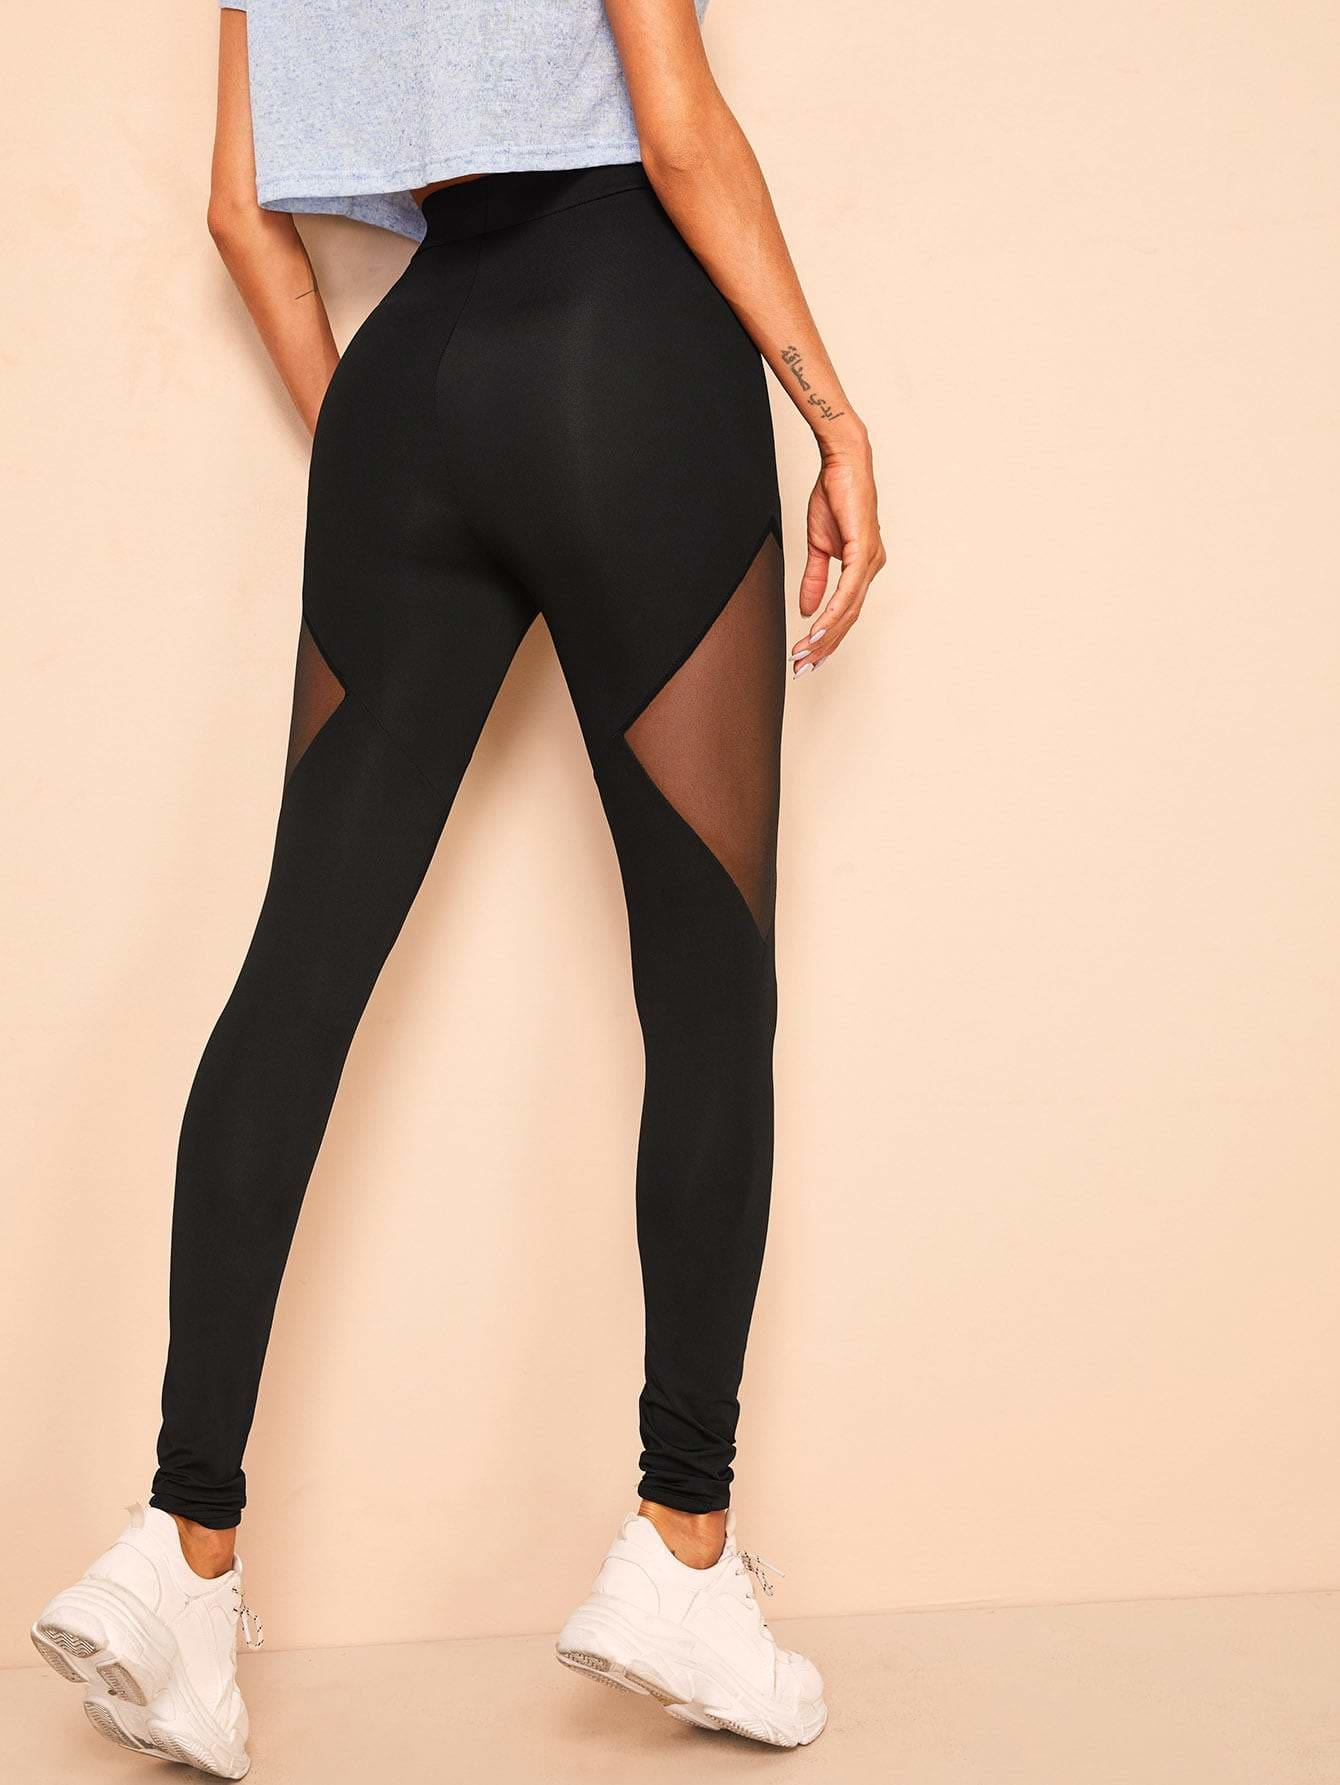 Mesh Insert High Waist Leggings - S - Fittness Leggings